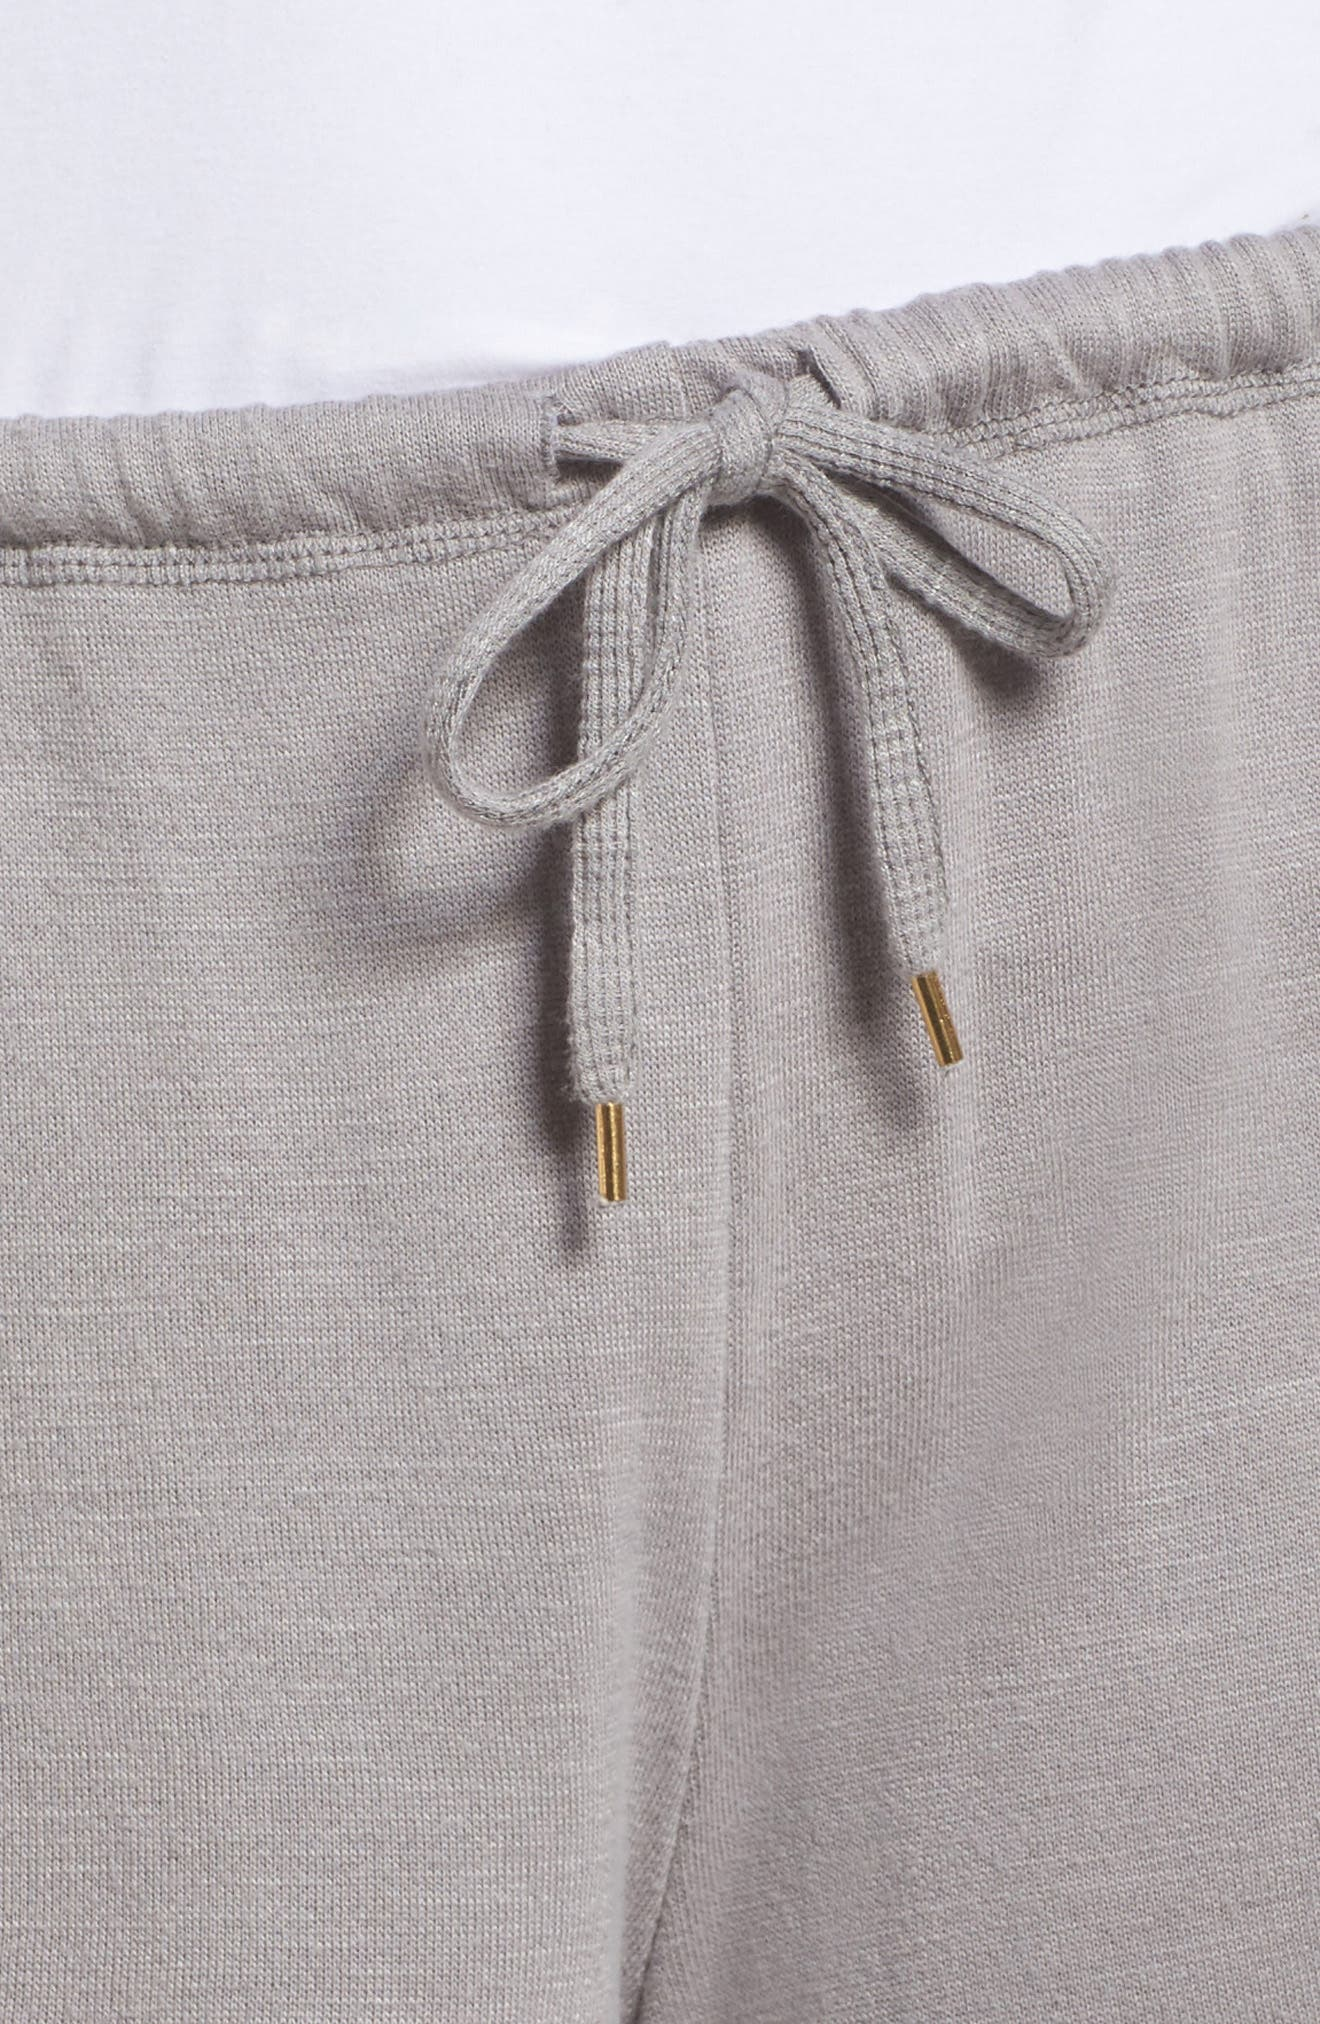 French Terry Lounge Shorts,                             Alternate thumbnail 7, color,